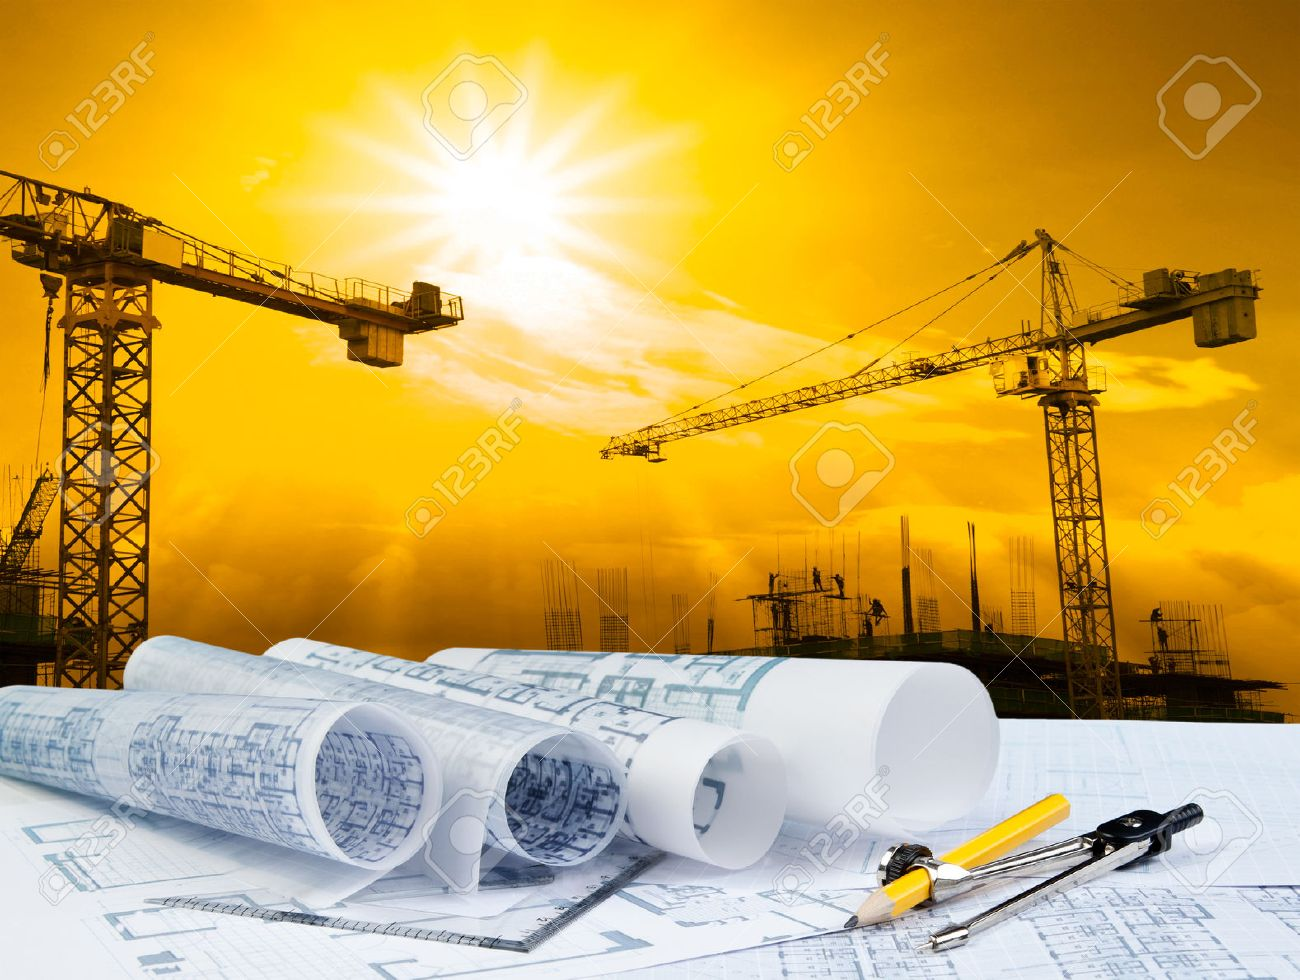 architect plan on working table with crane and building construction - 23858634